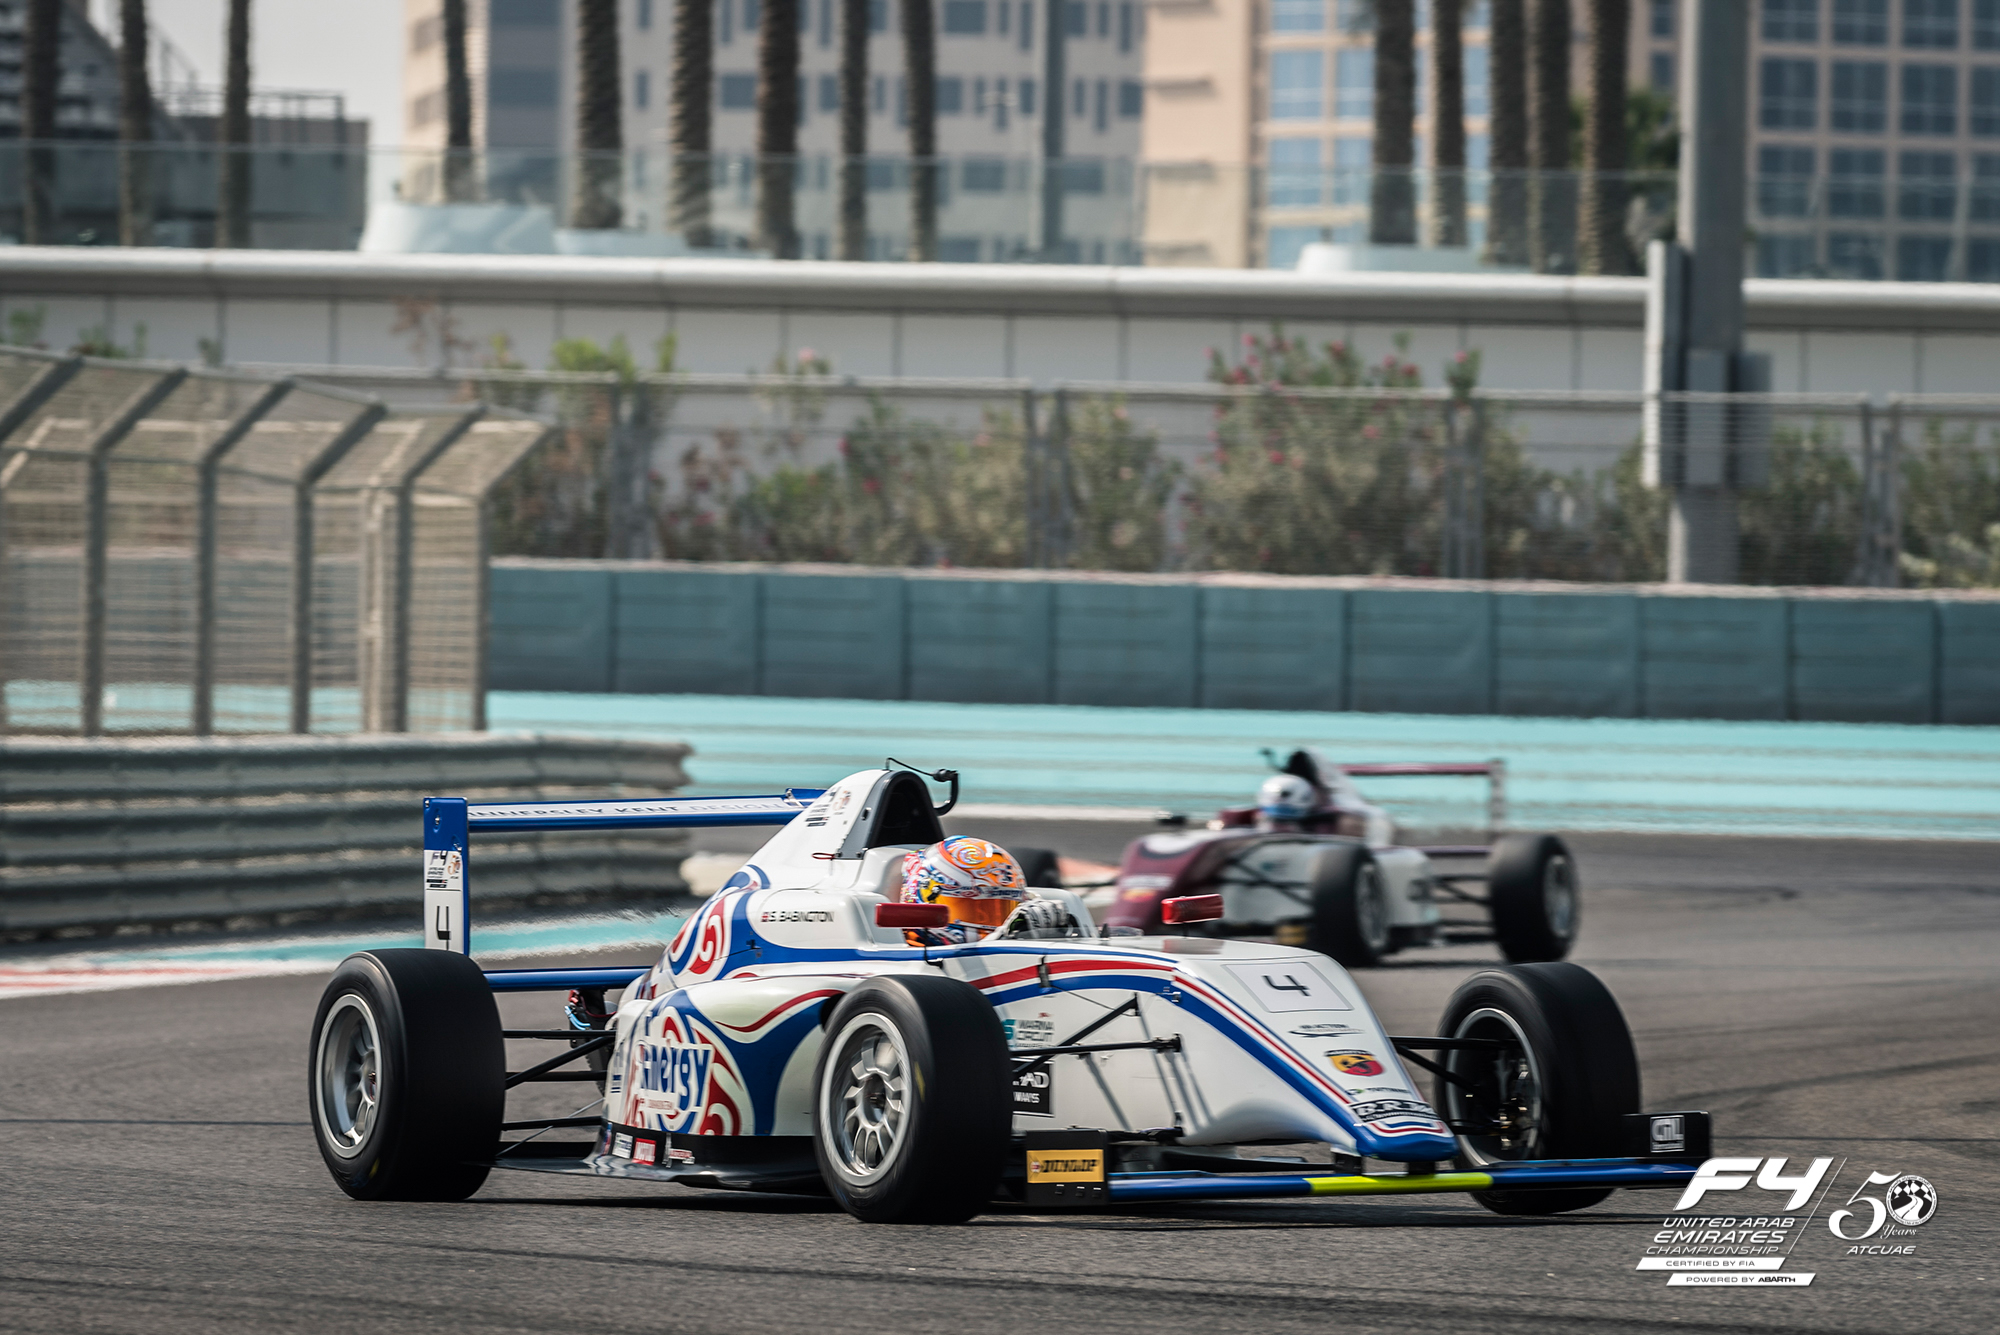 2016 16 12   F4 Second Round   Abu Dhabi 3 1